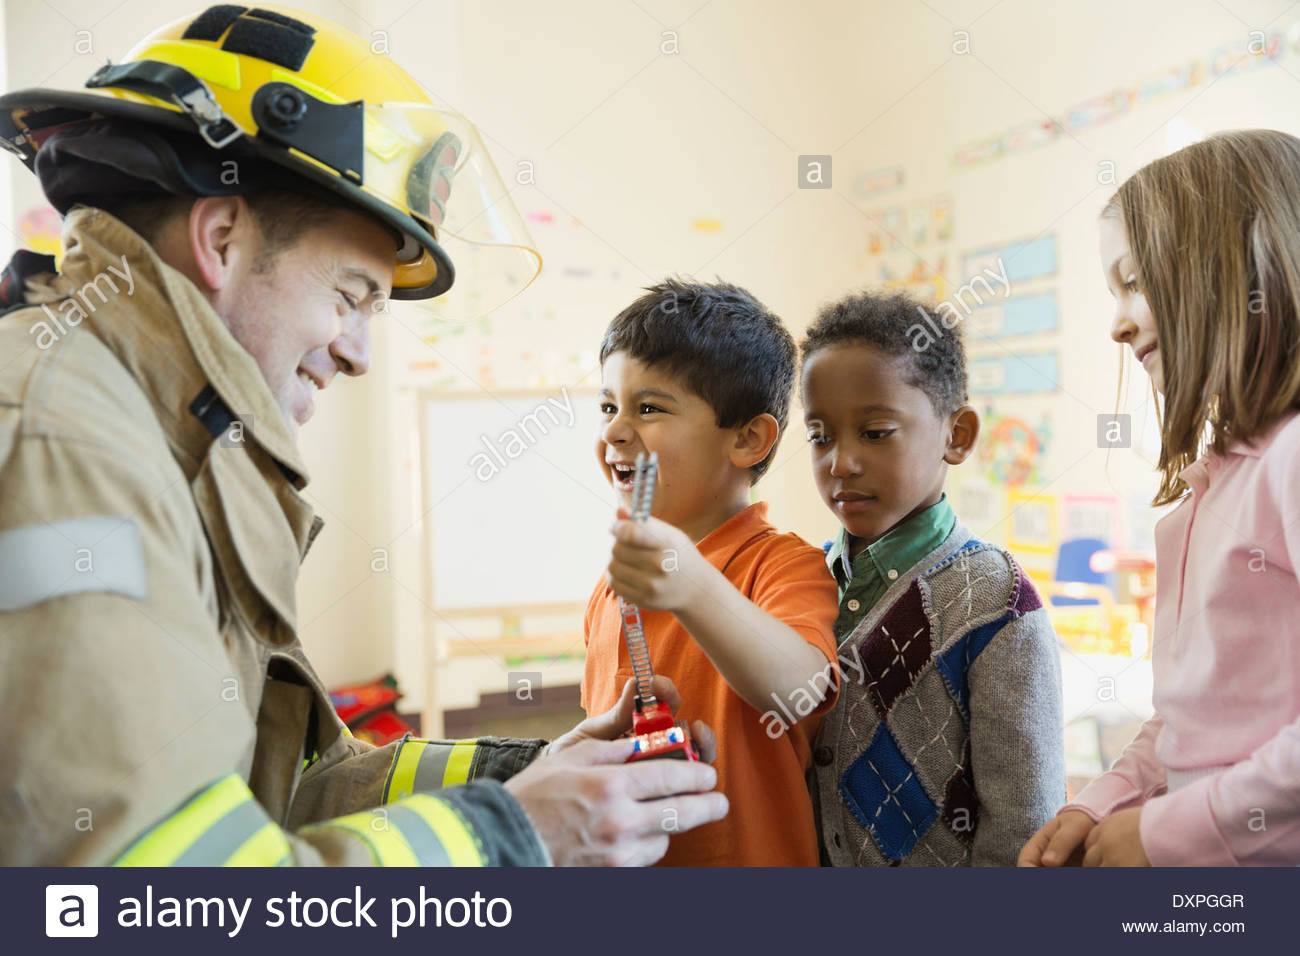 Firefighter visiting elementary students - Stock Image